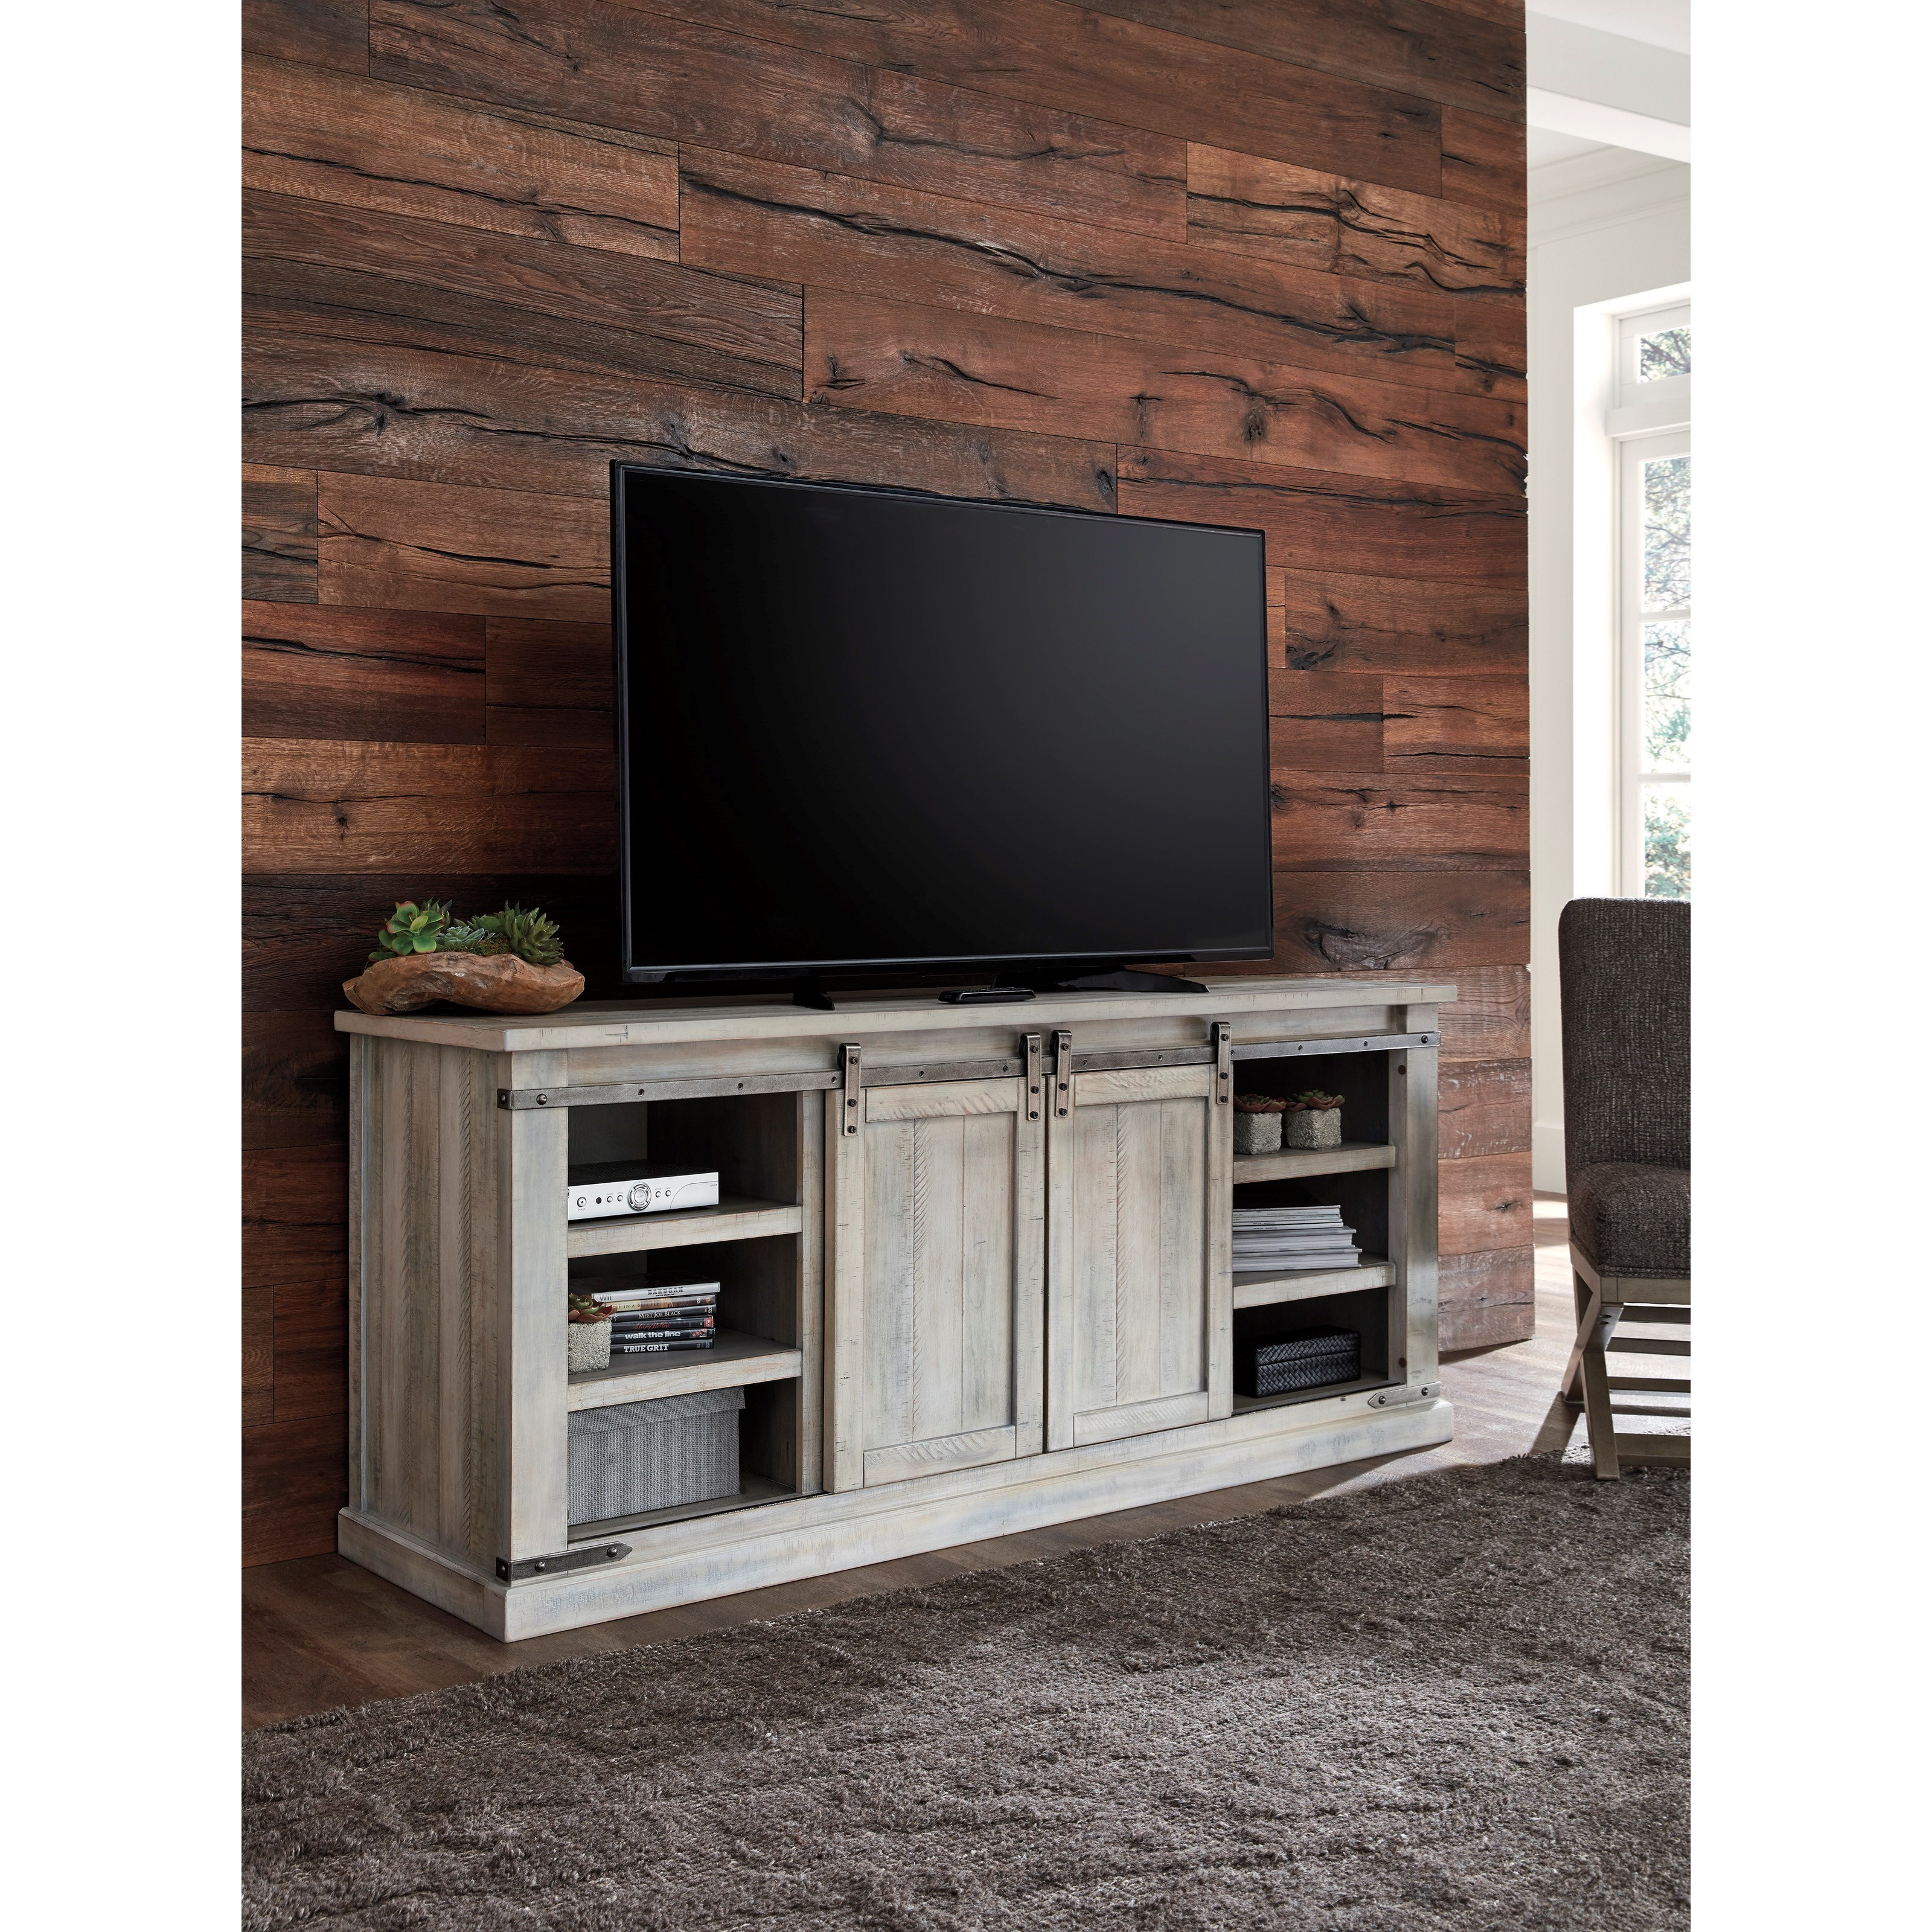 Ashley Furniture Cary Nc: Del Sol AS Carynhurst W755-68 Rustic White Extra Large TV